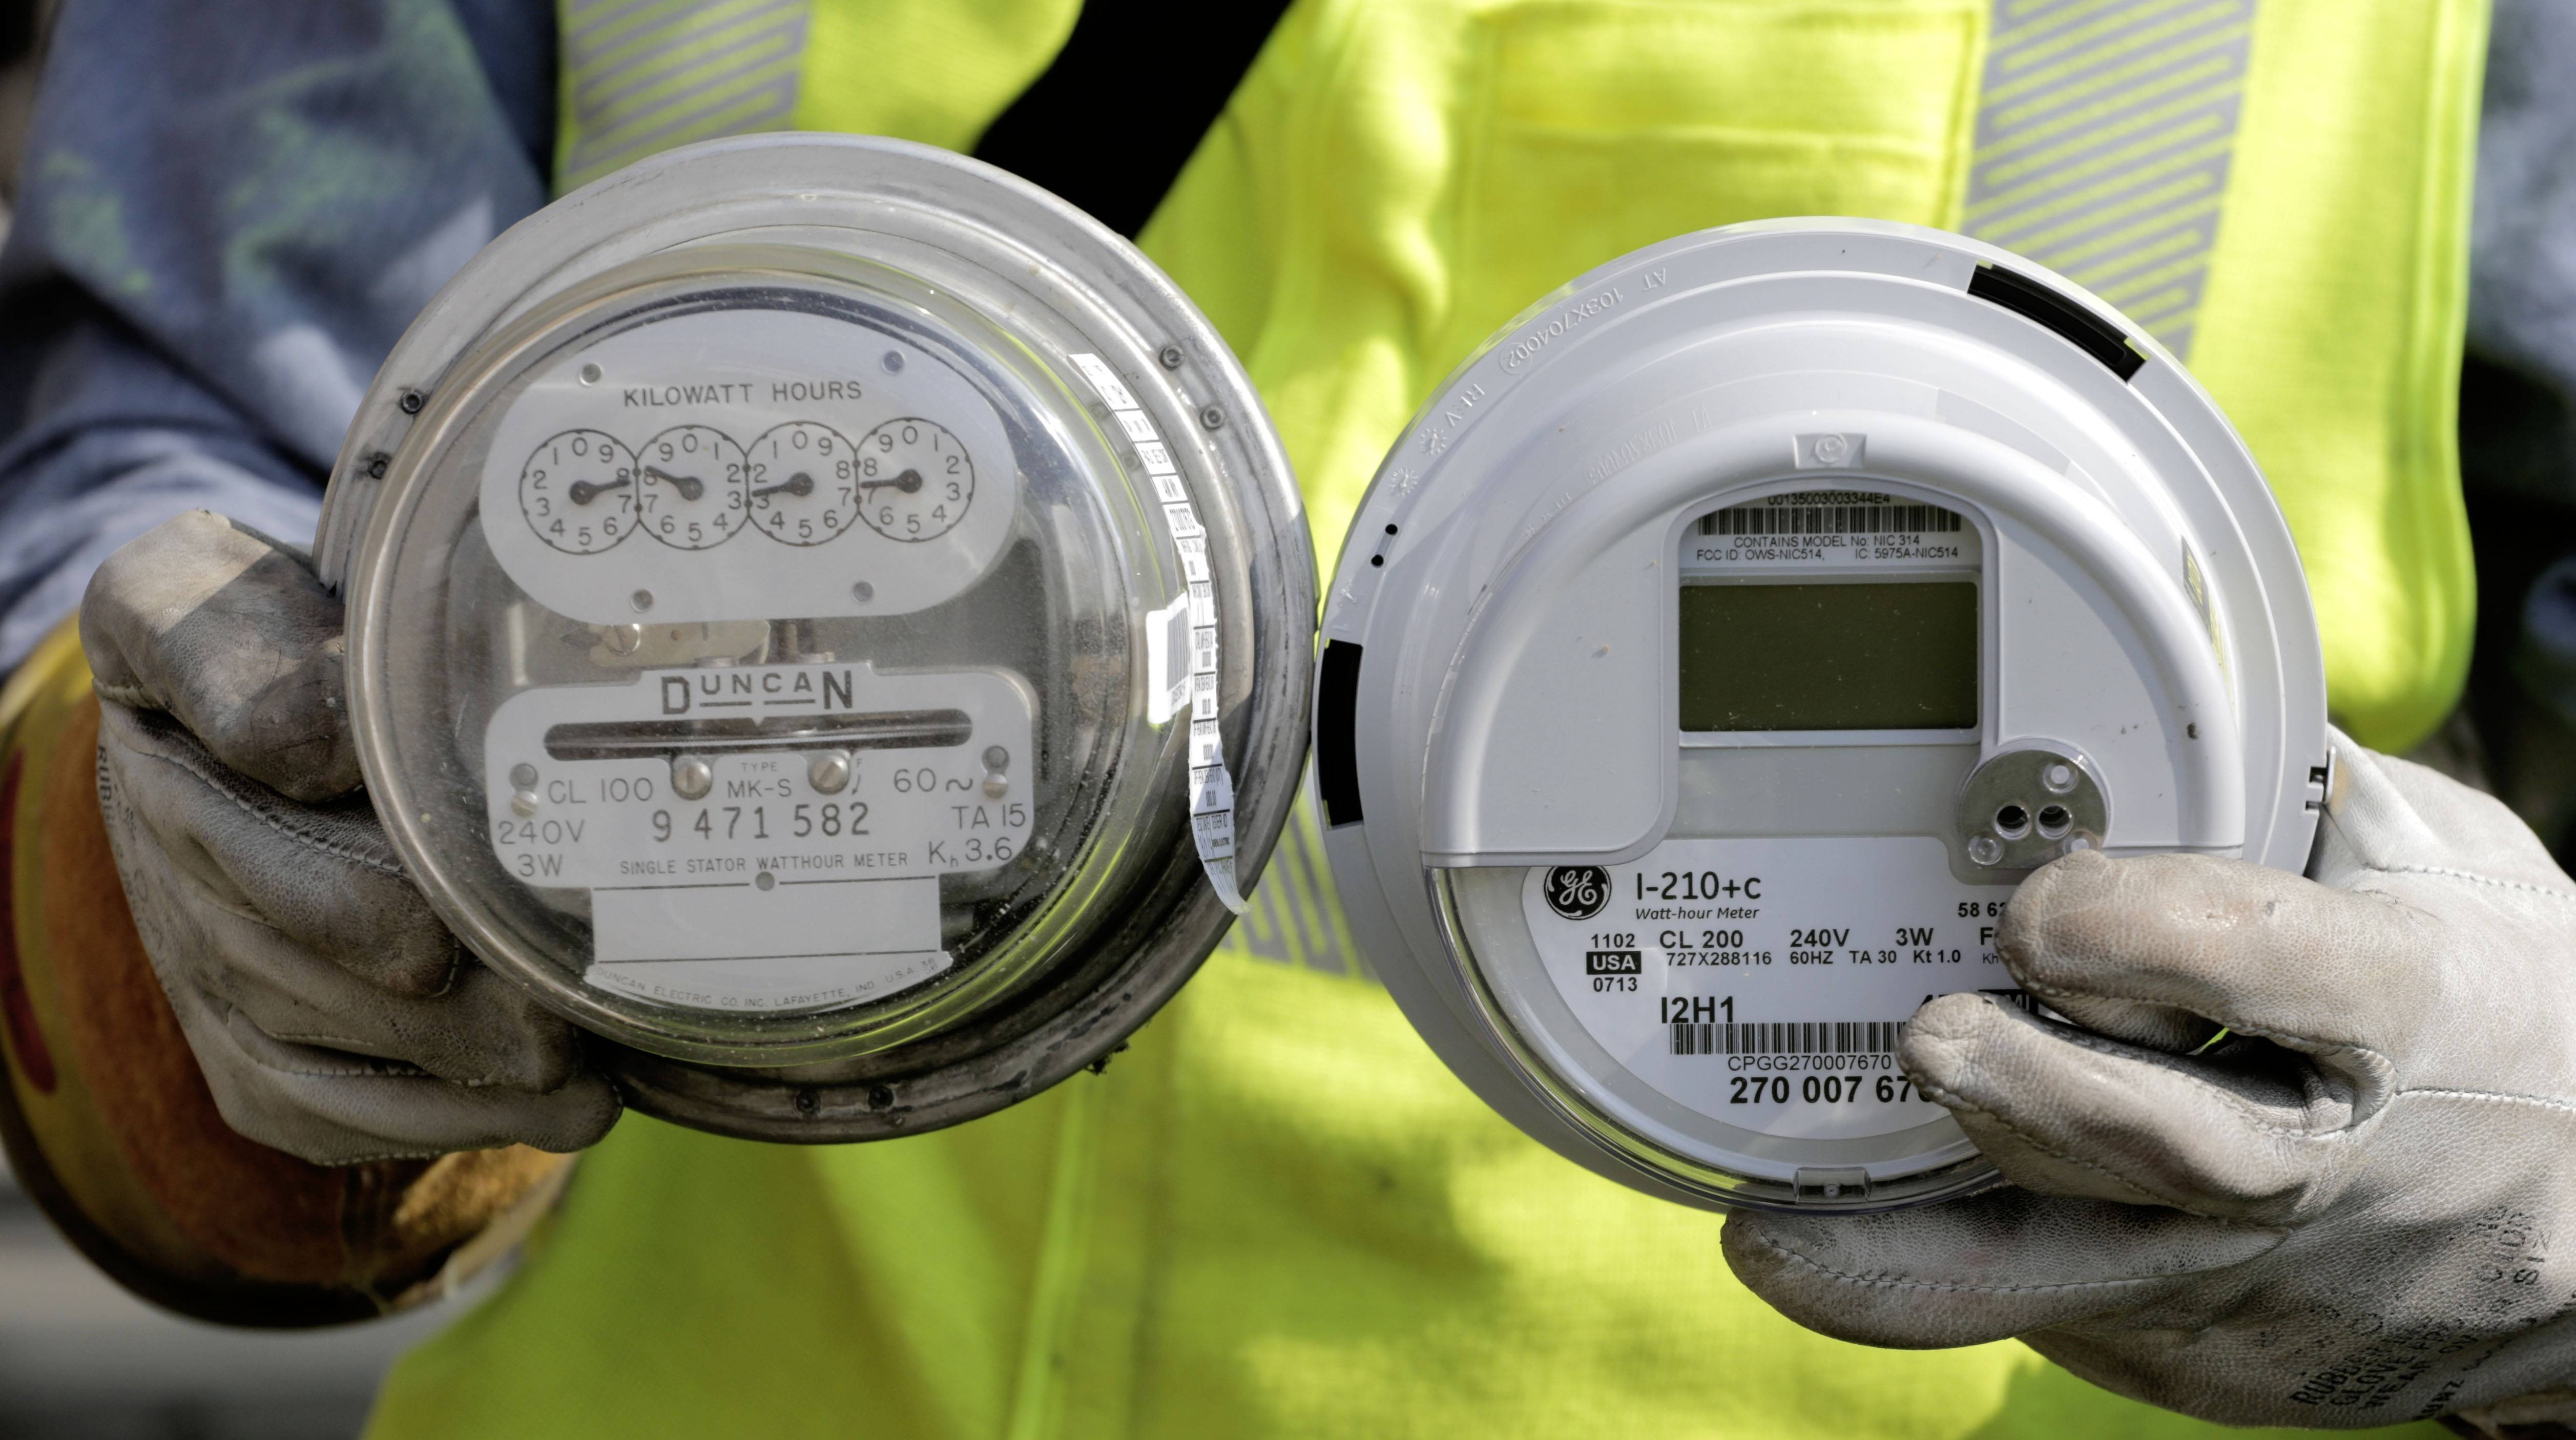 ComEd officials plan to begin installing smart meters in six municipalities in DuPage County next month, including Lombard, Wheaton, Glen Ellyn, Warrenville, Oak Brook and West Chicago.